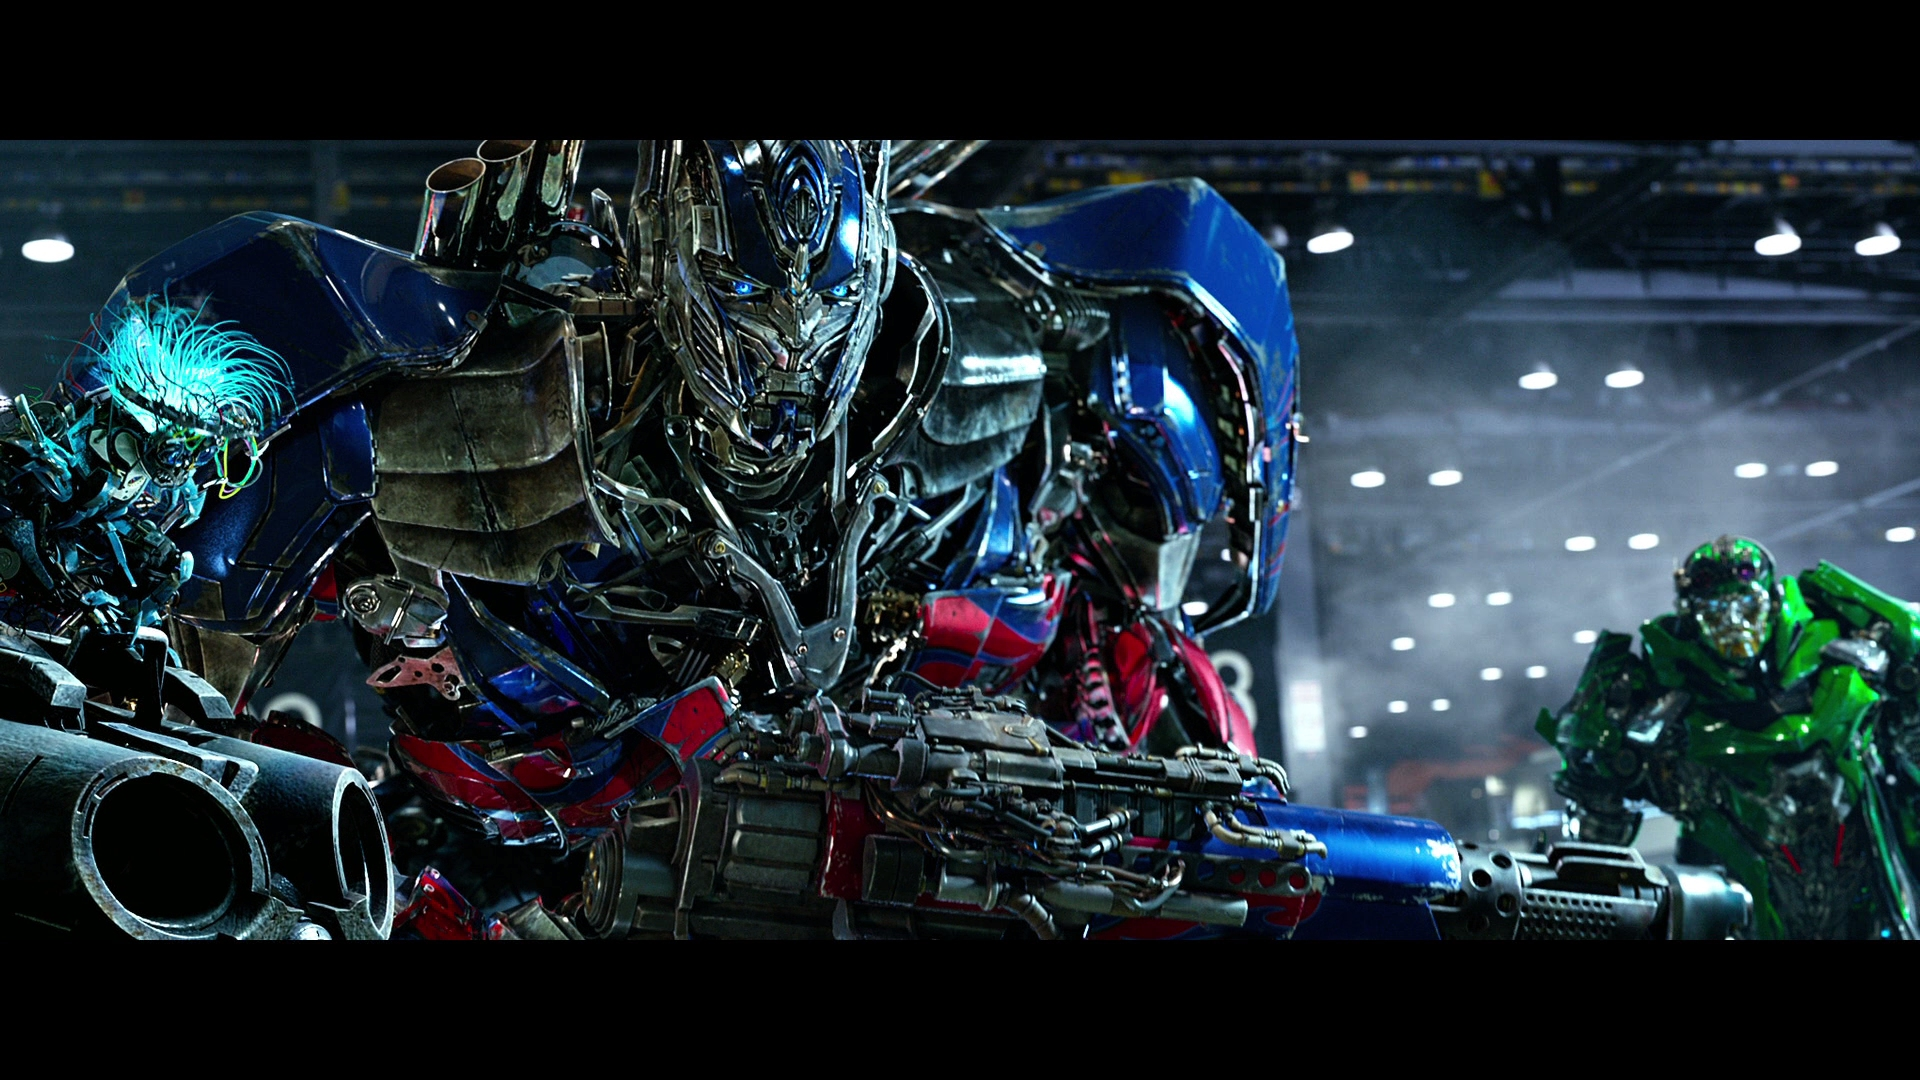 Transformers: Age of Extinction 3D Blu-ray Review - DoBlu ...